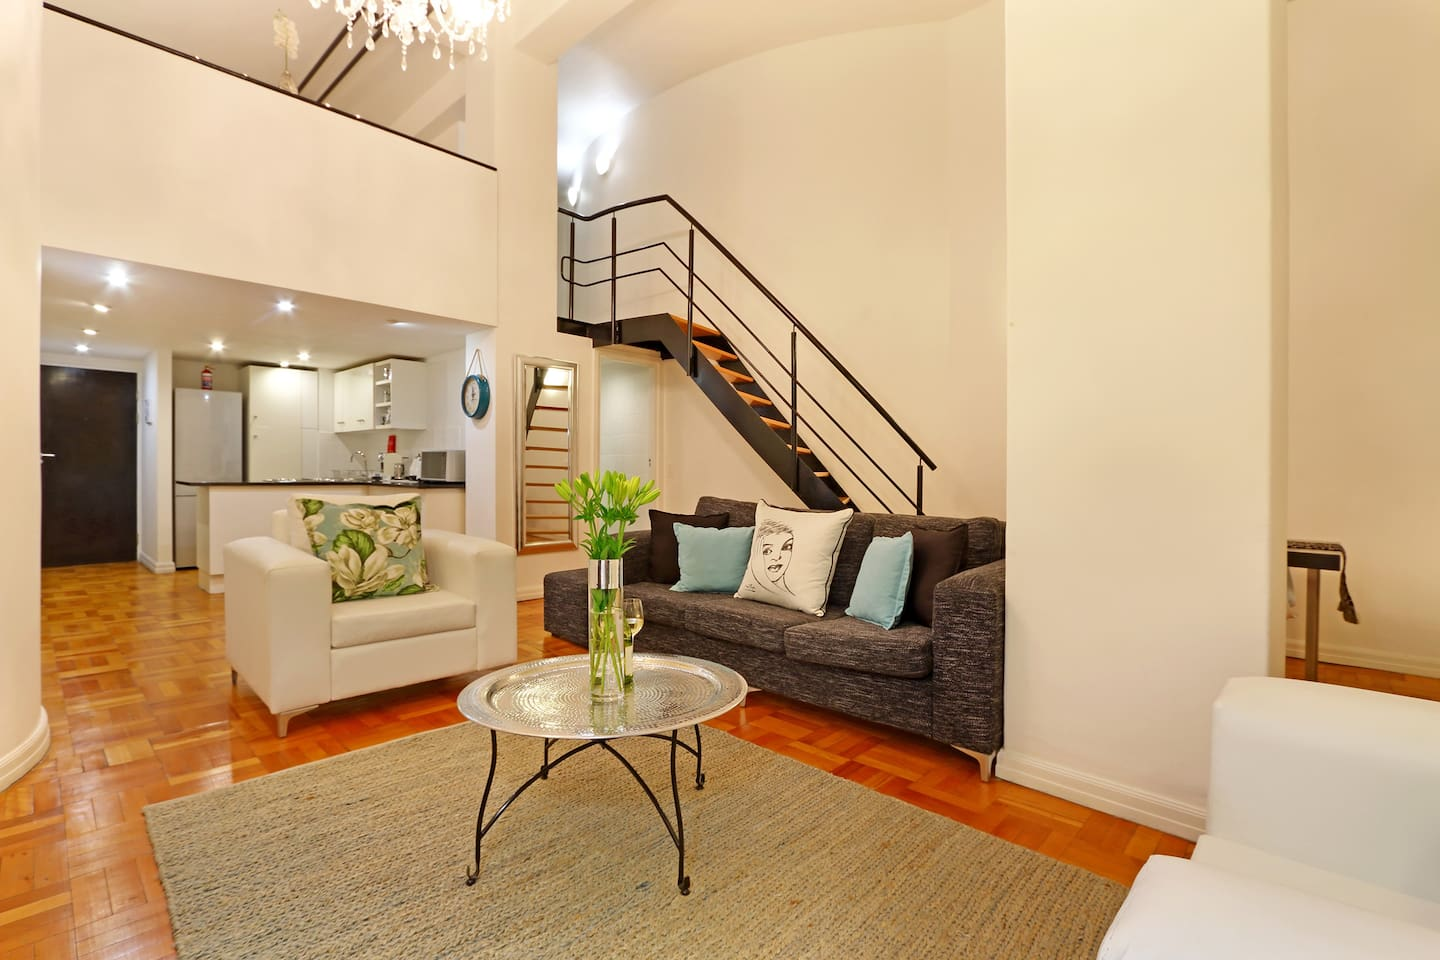 Summer Breeze: Living area with stairs to loft and kitchen in the background